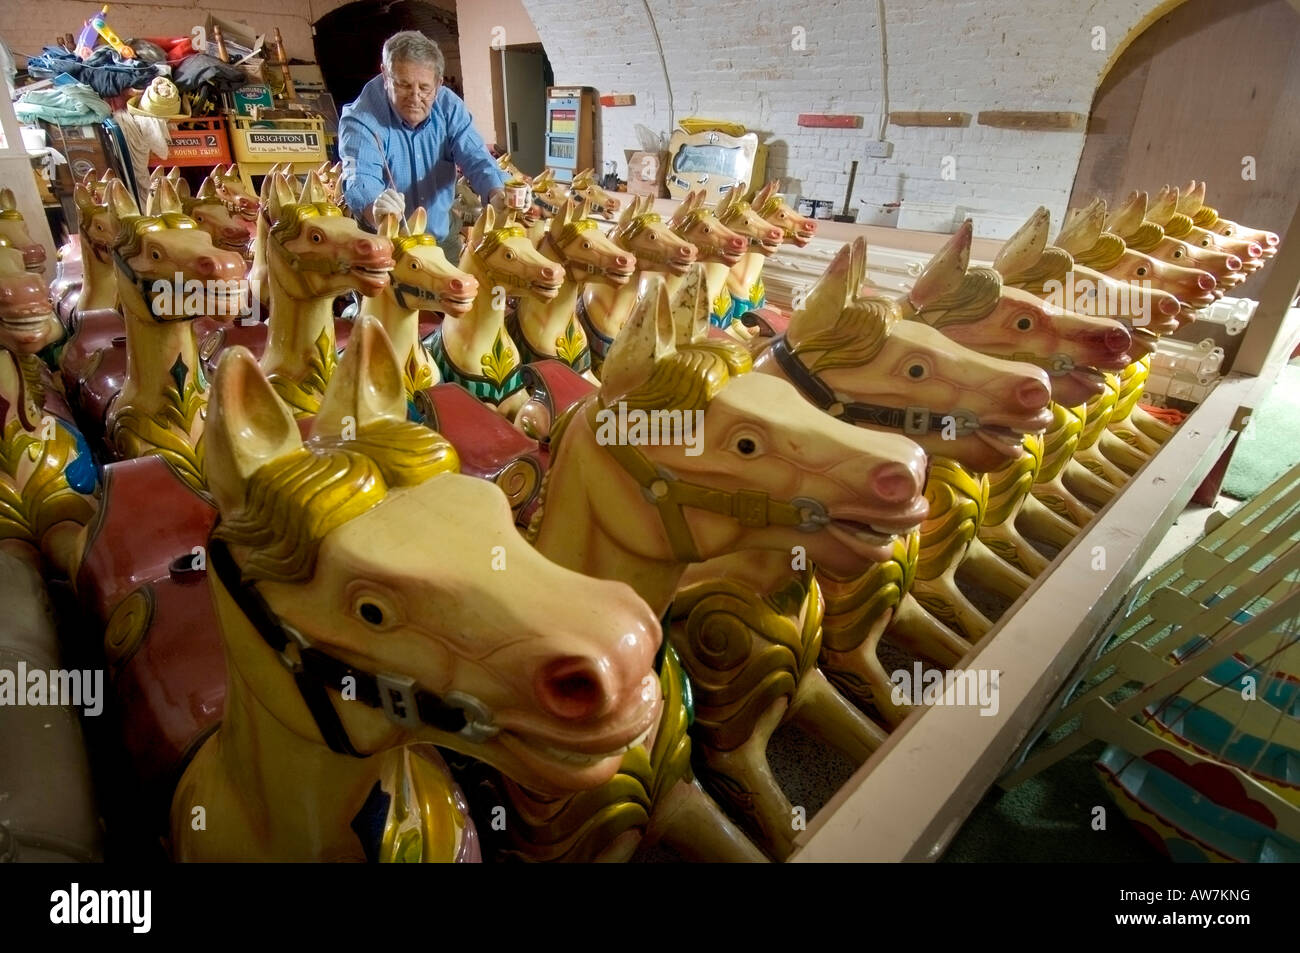 Fairground carousel horses in storage having winter repairs done out of season. - Stock Image